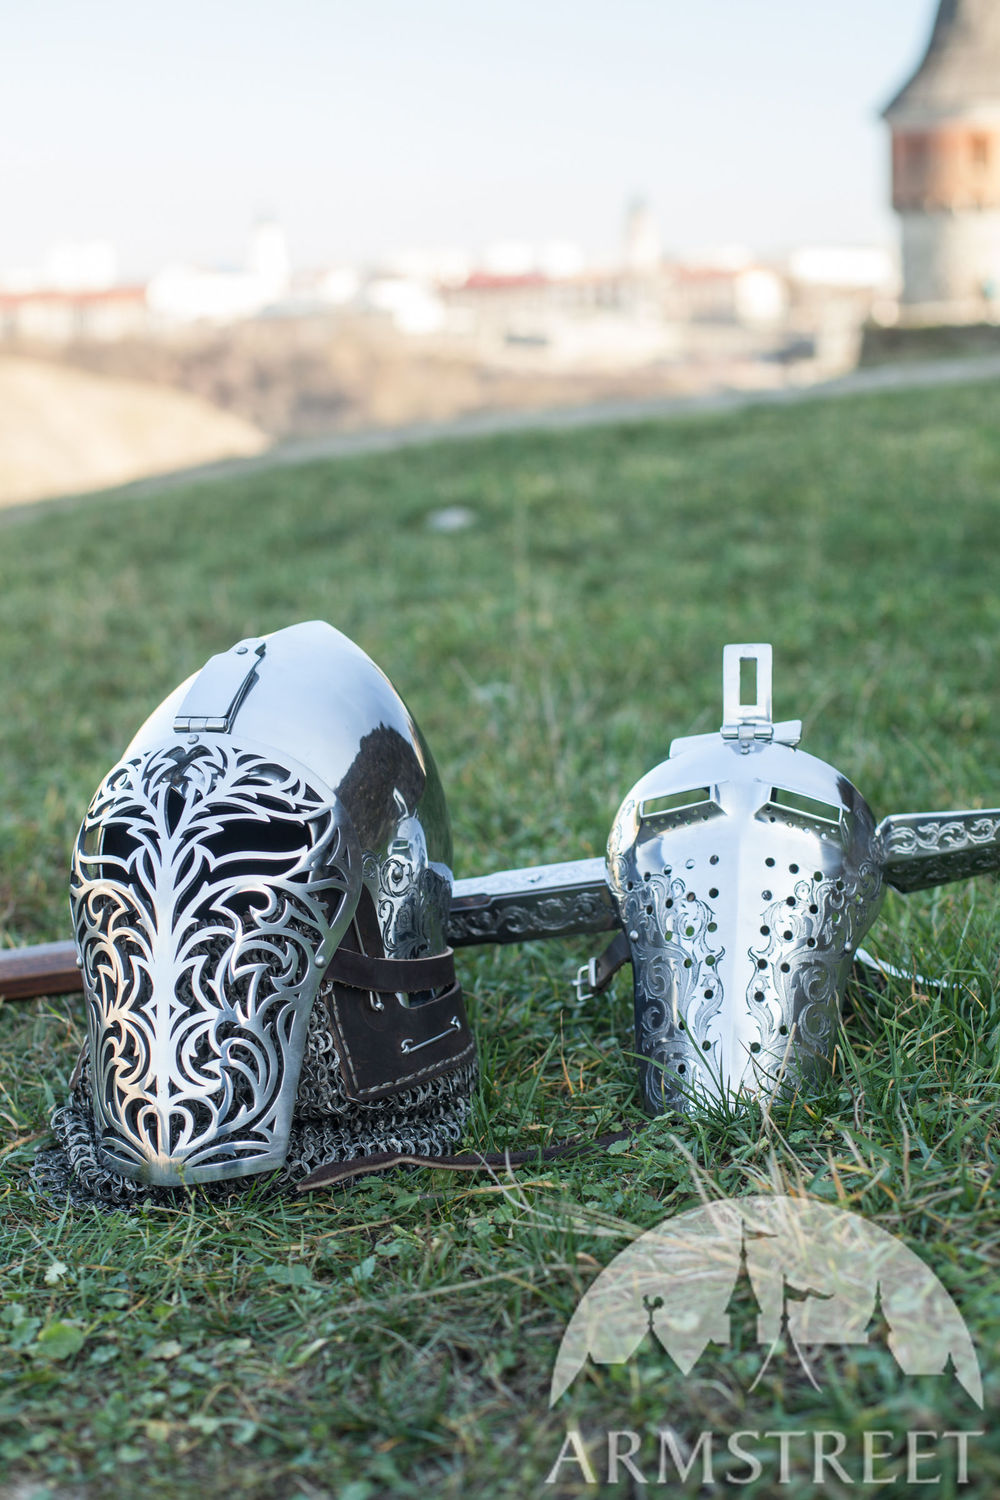 Knight of Fortune bascinet helmet with SCA bargrill